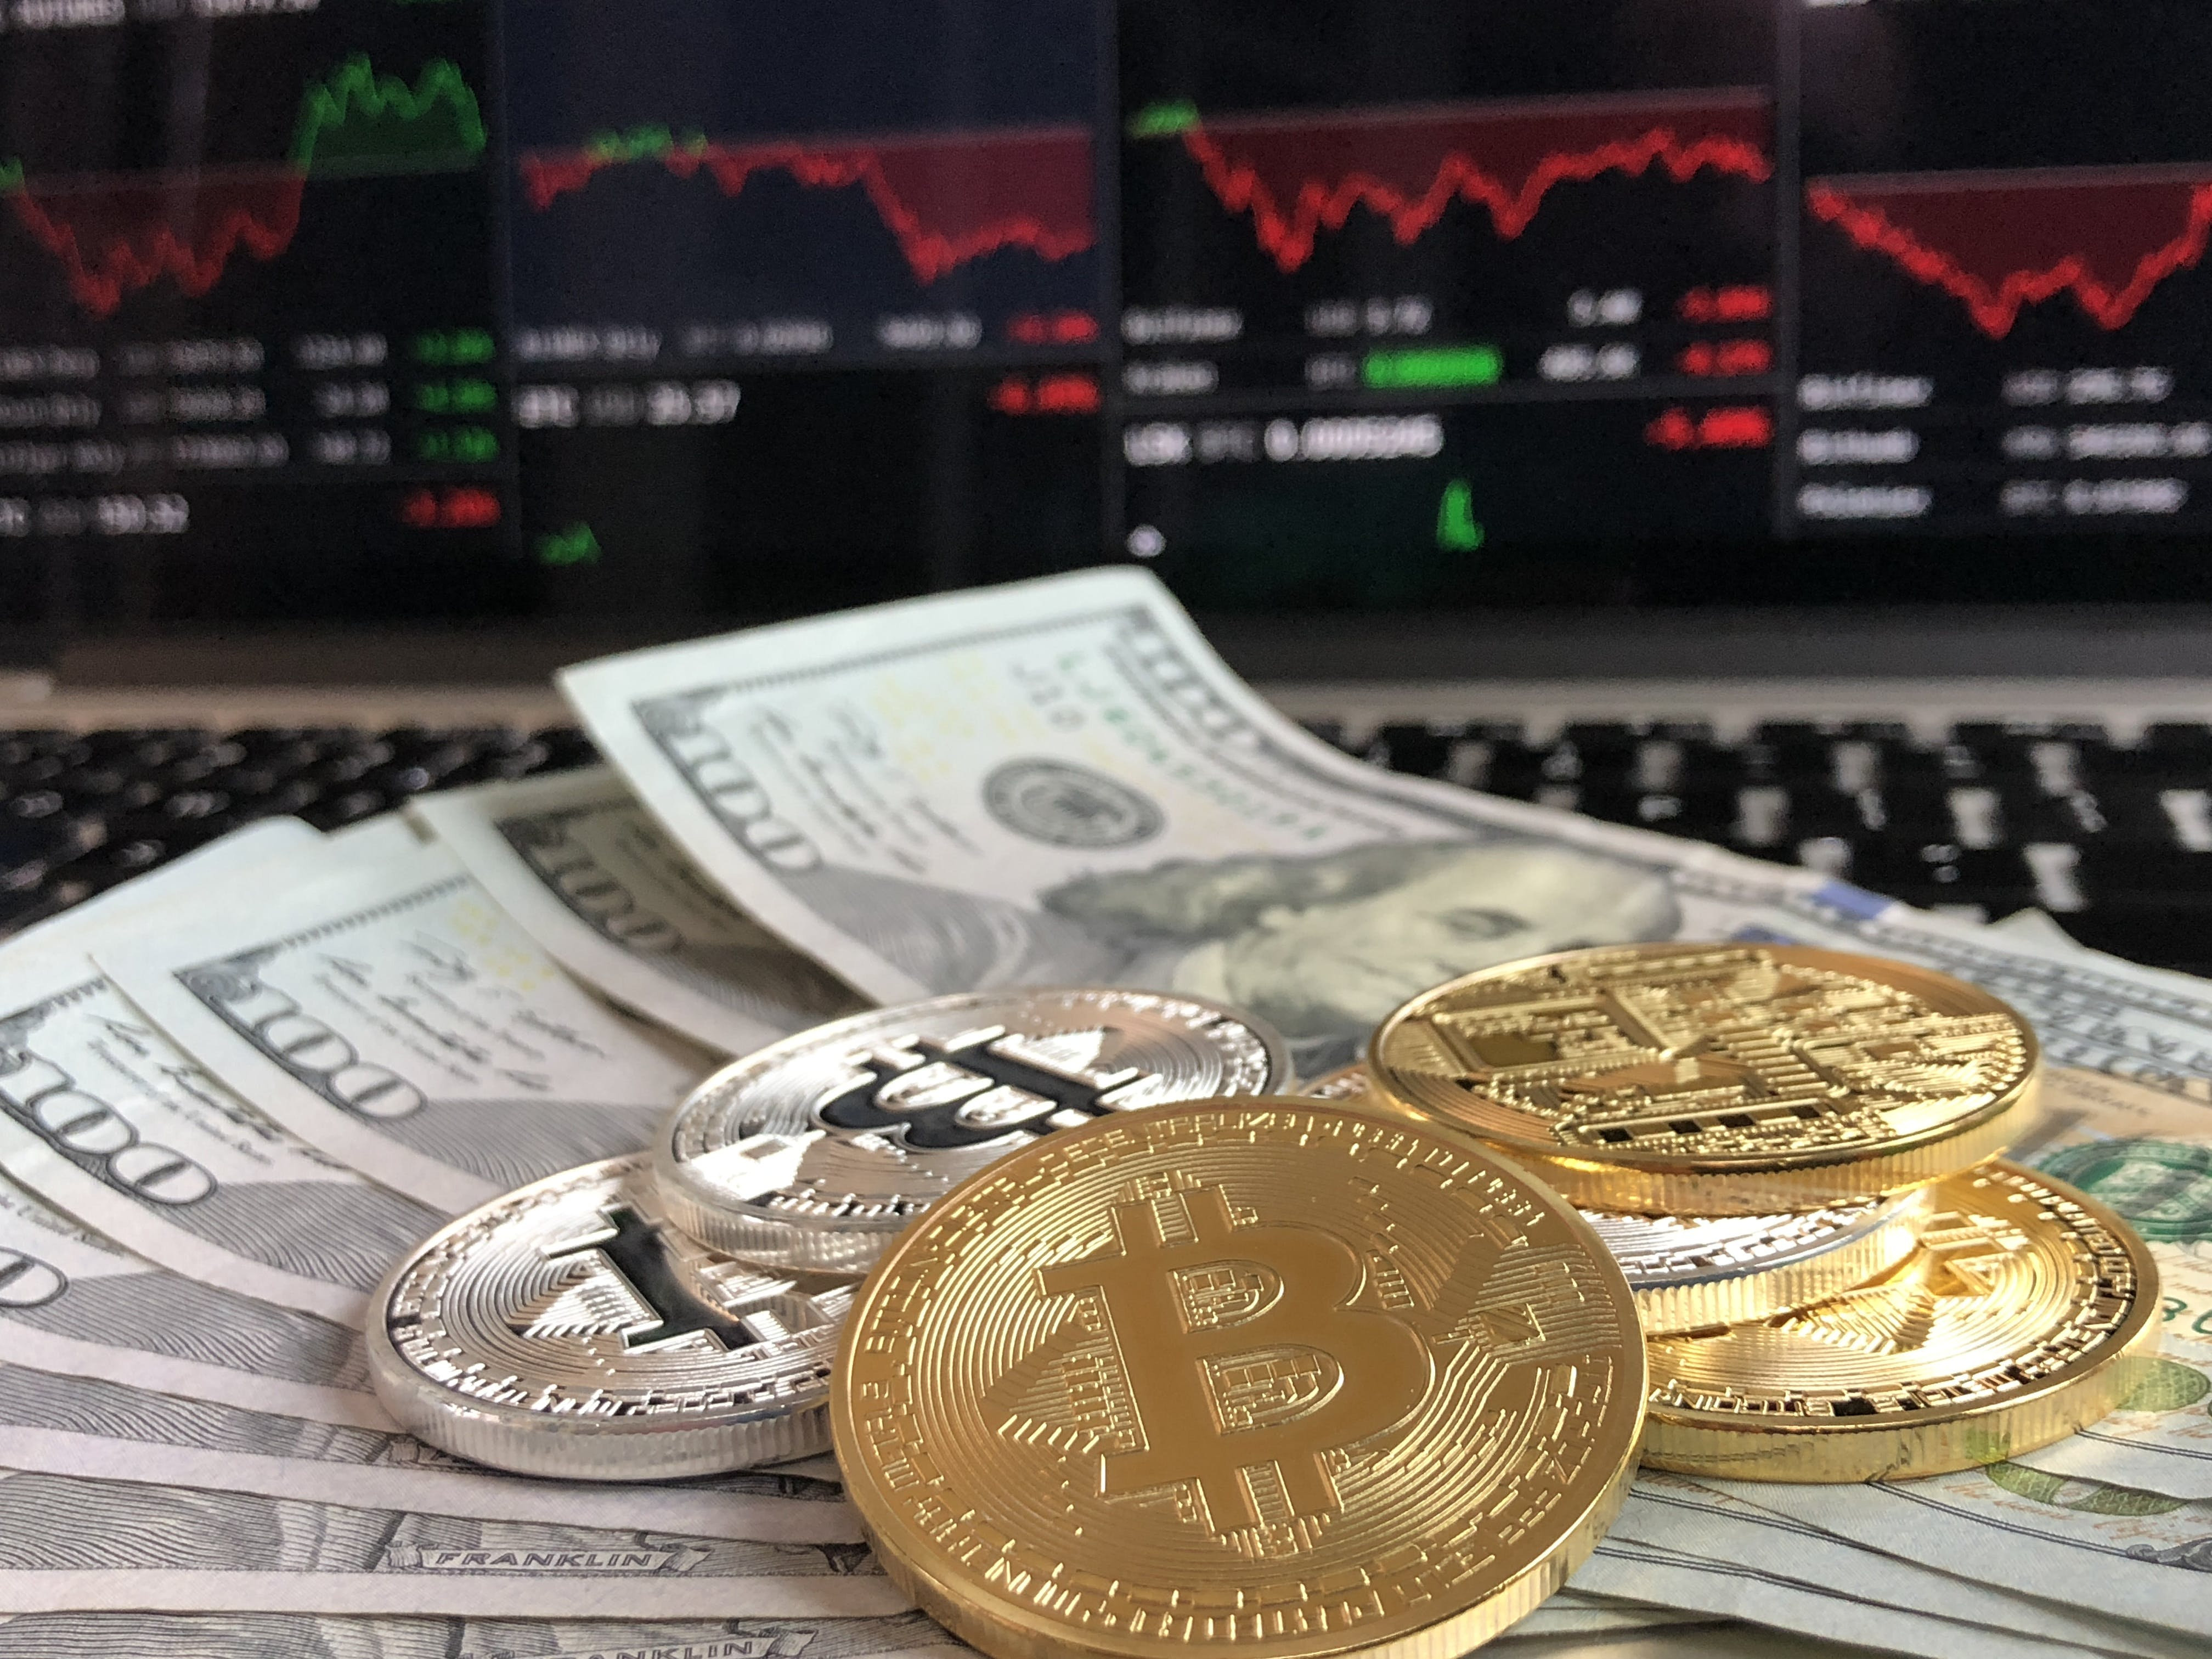 Free stock photo of money, coins, currency, crypto